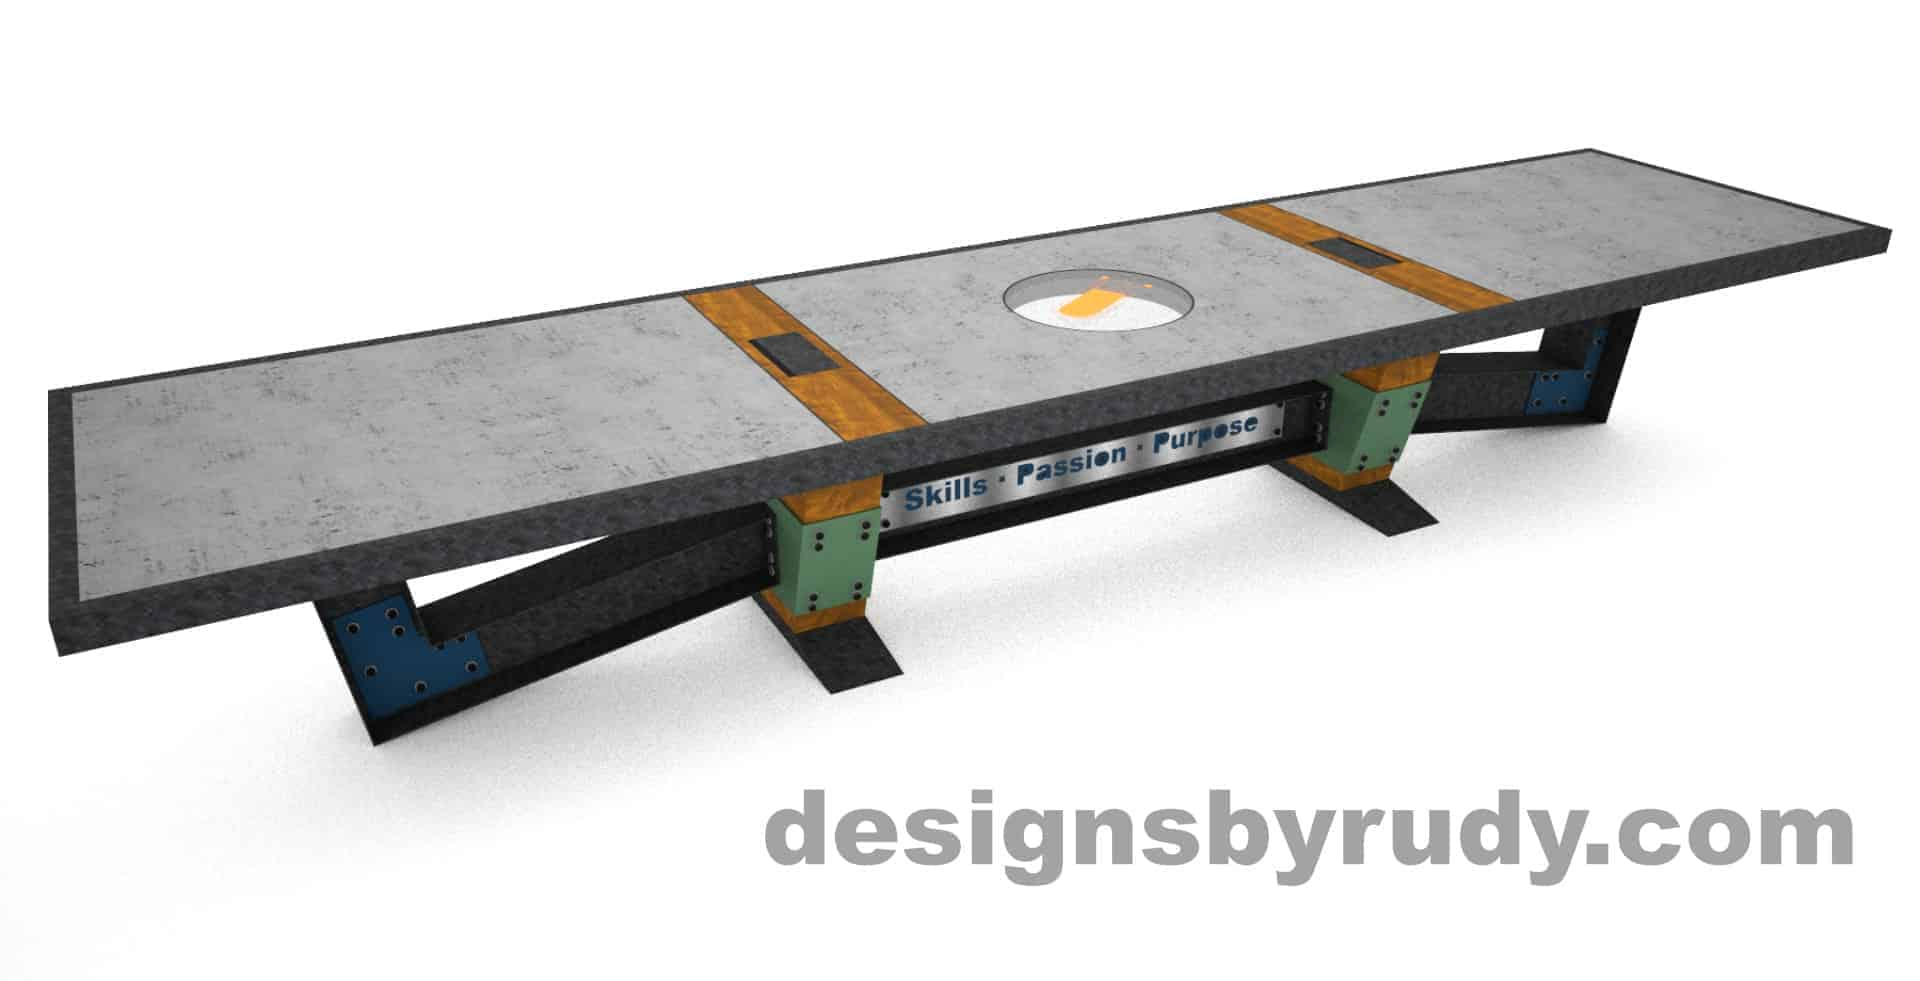 1 Concept concrete, steel, and wood conference table full top view